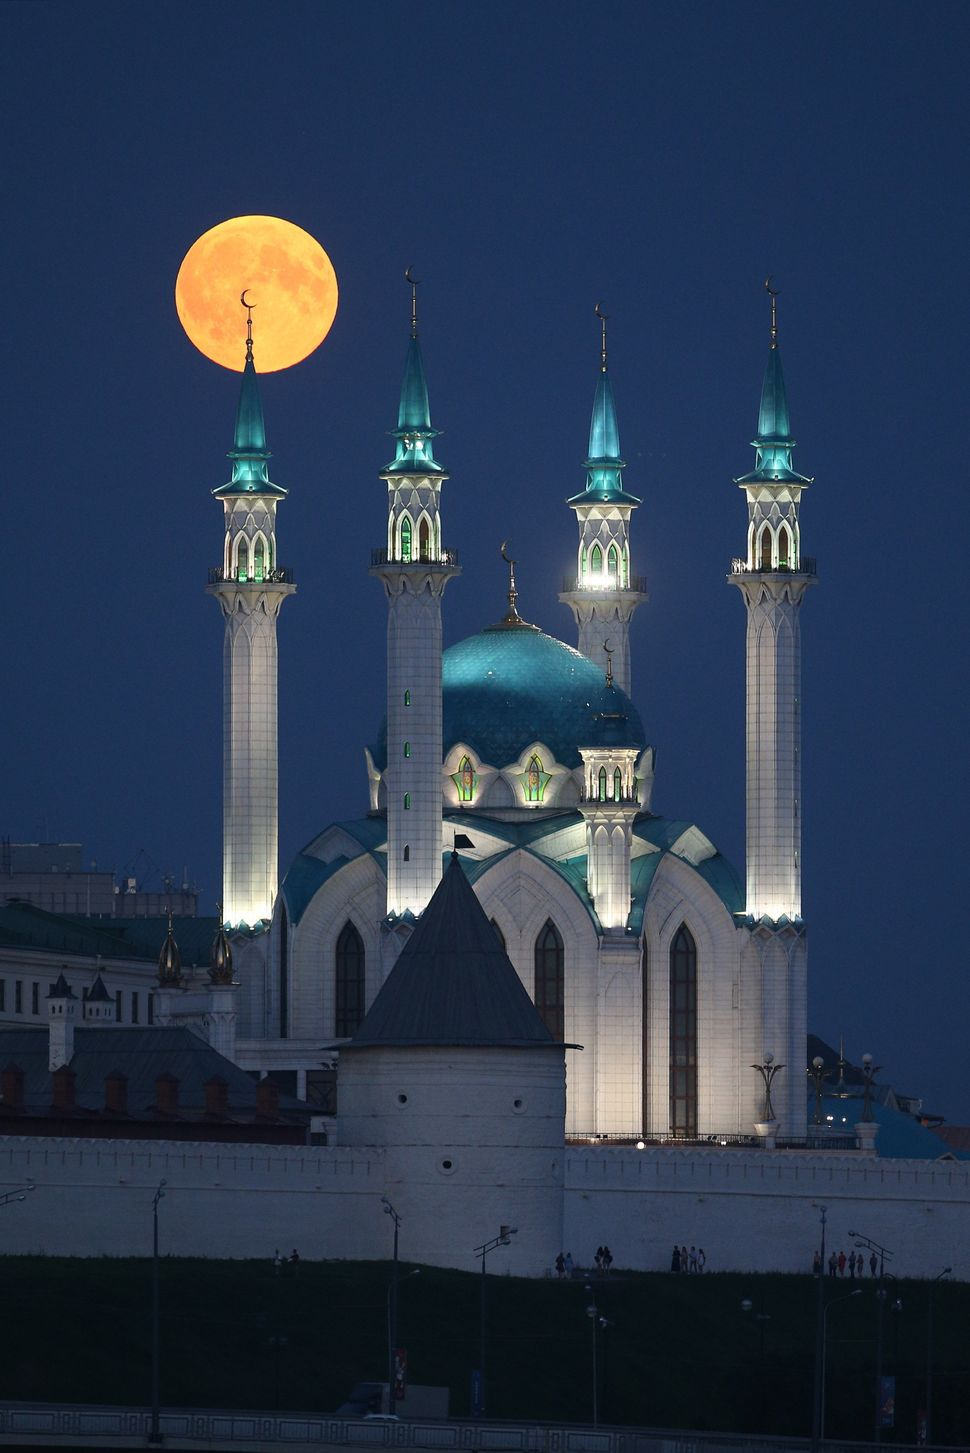 Over the Qolsharif Mosque in Kazan, Russia.